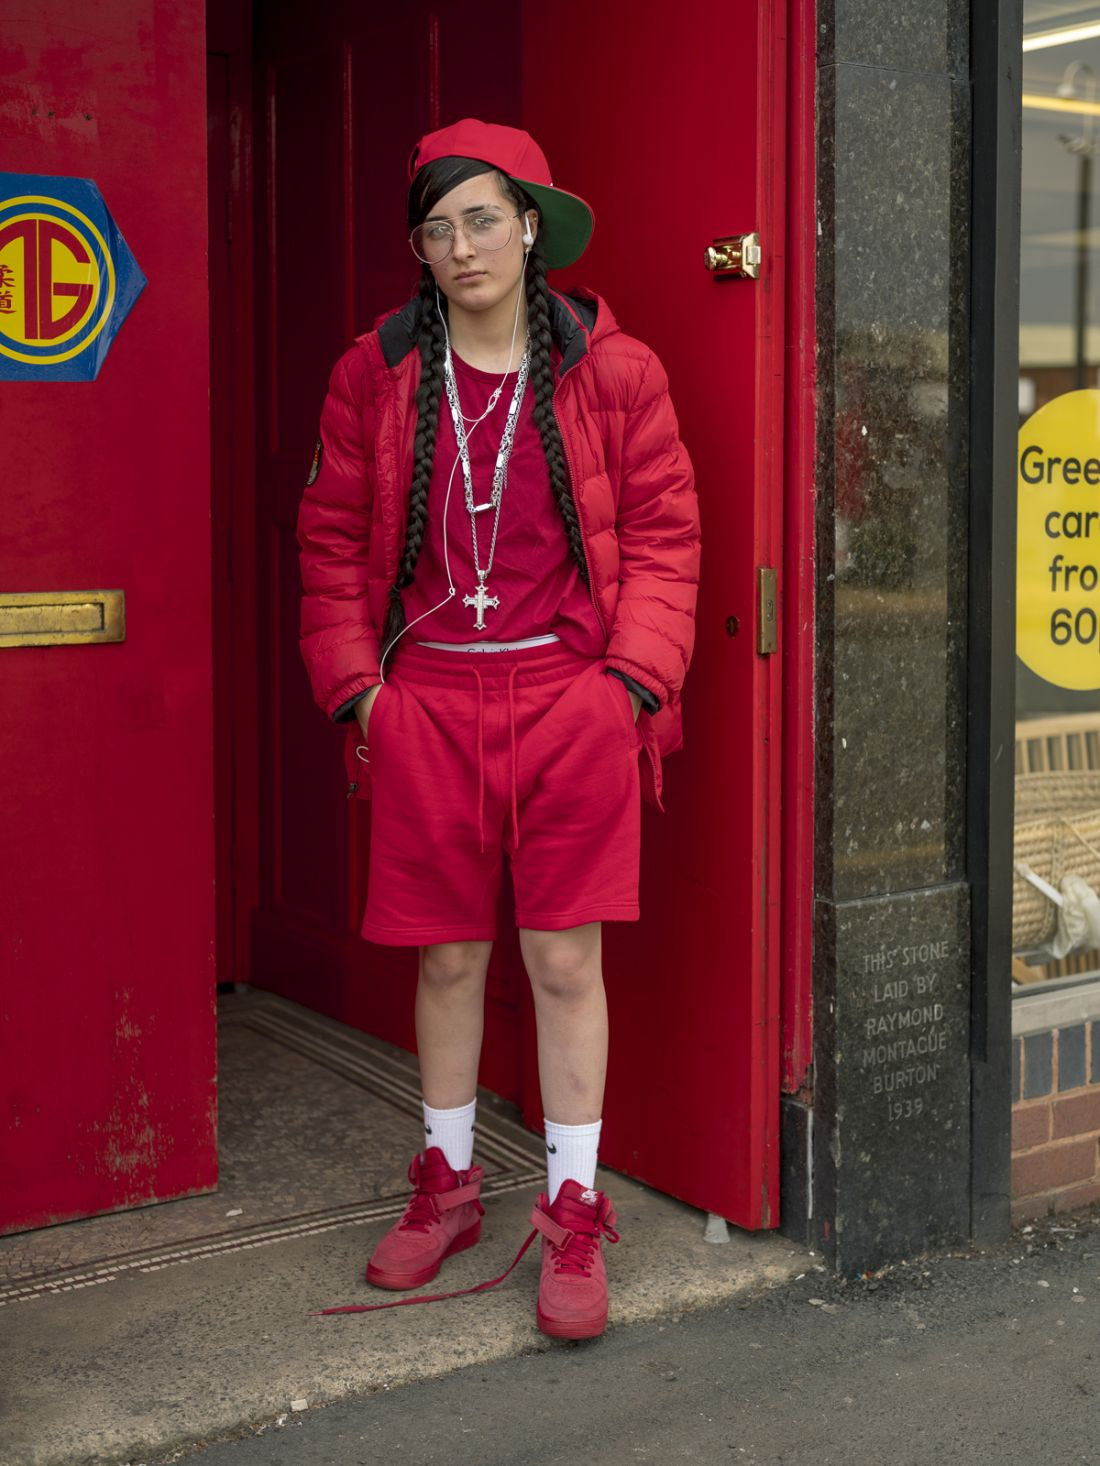 Looking for Sandwell: Niall McDiarmid's colourful portraits of people in the West Midlands